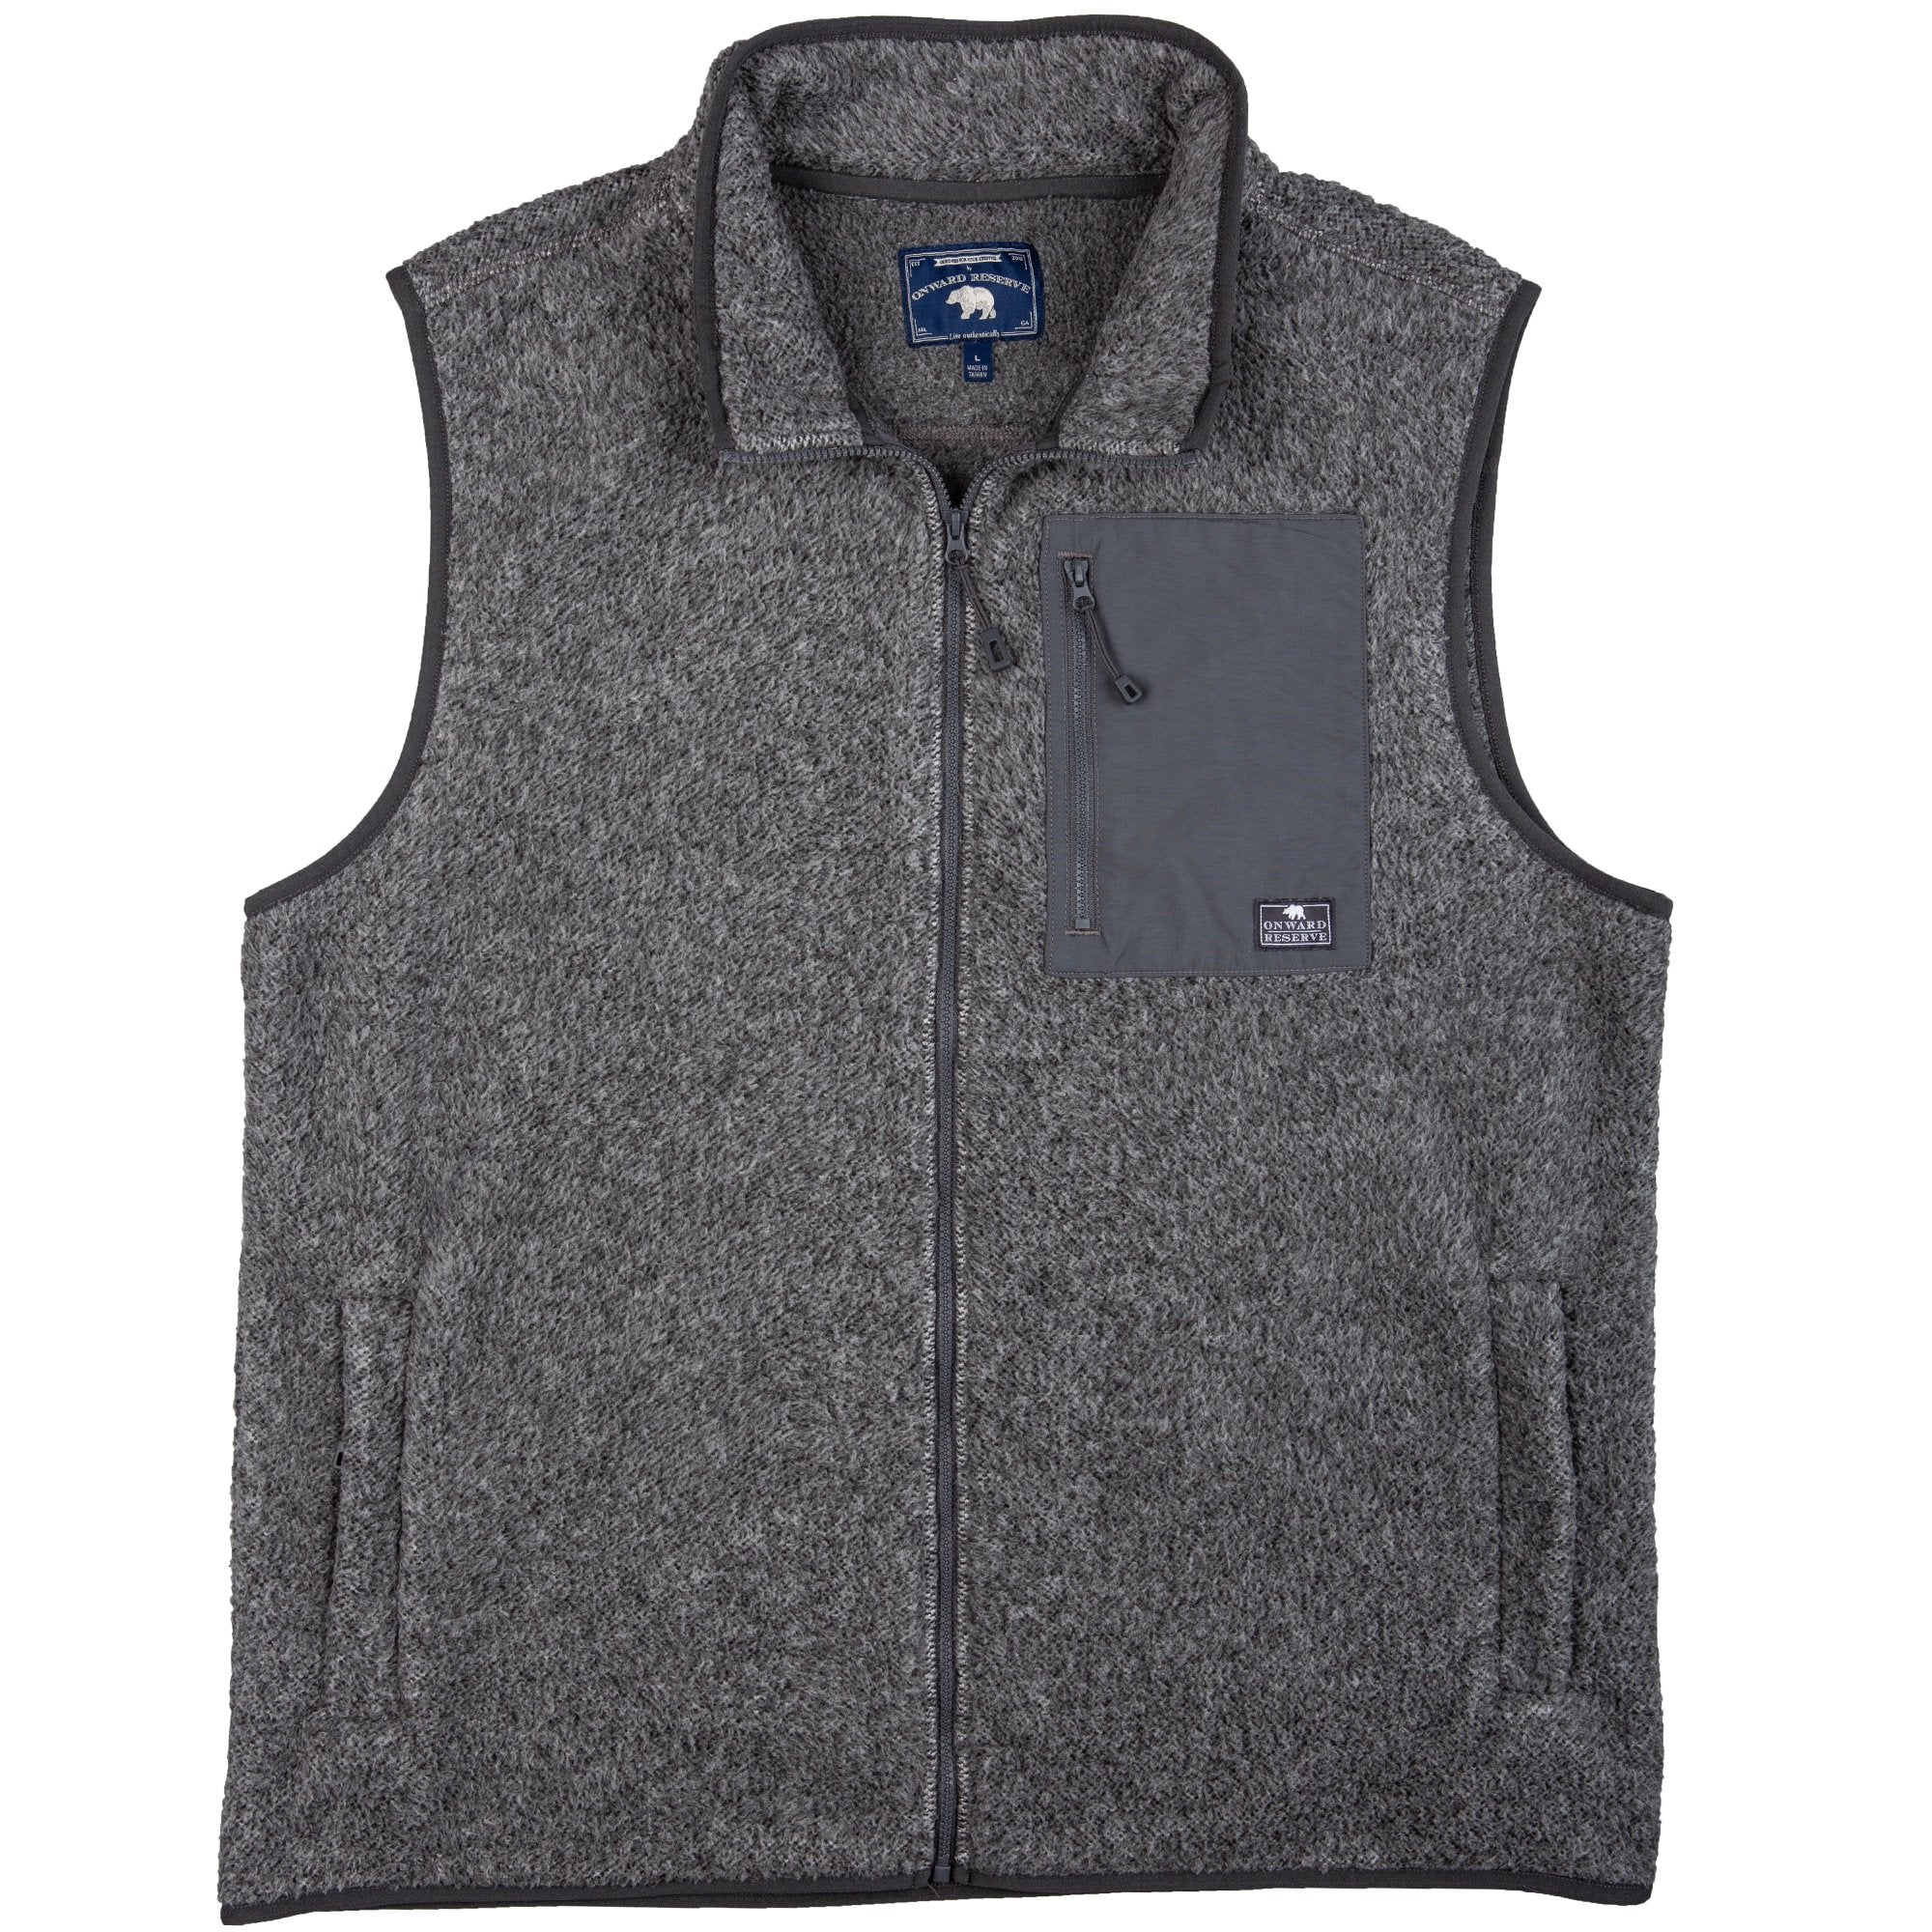 Onward Reserve Fleece Vest